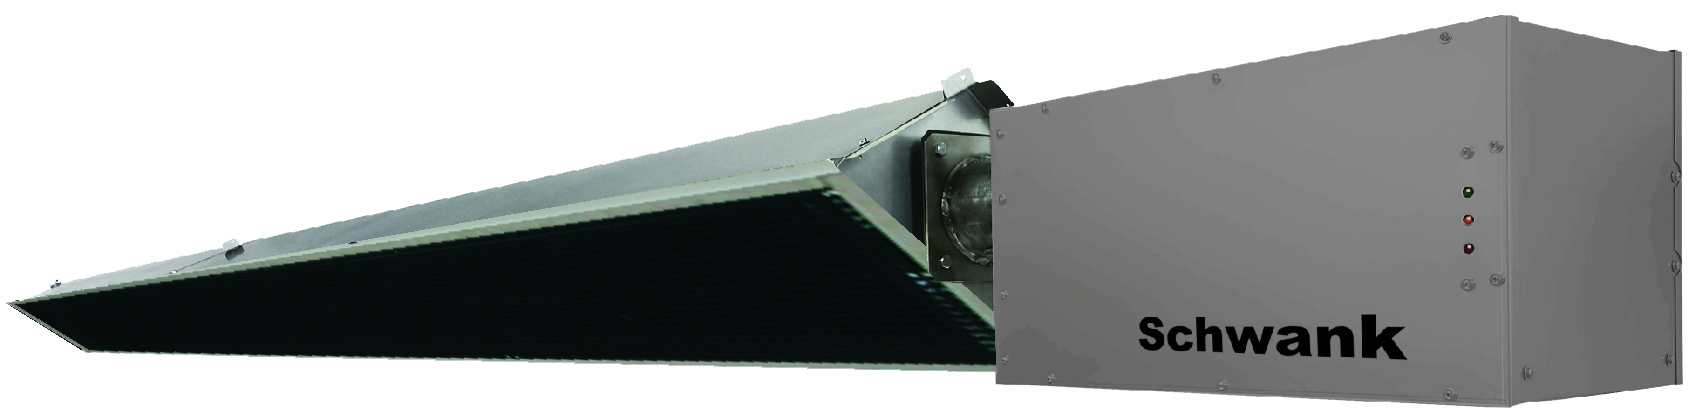 Durable, Corrosion Resistant Commercial Patio Heaters